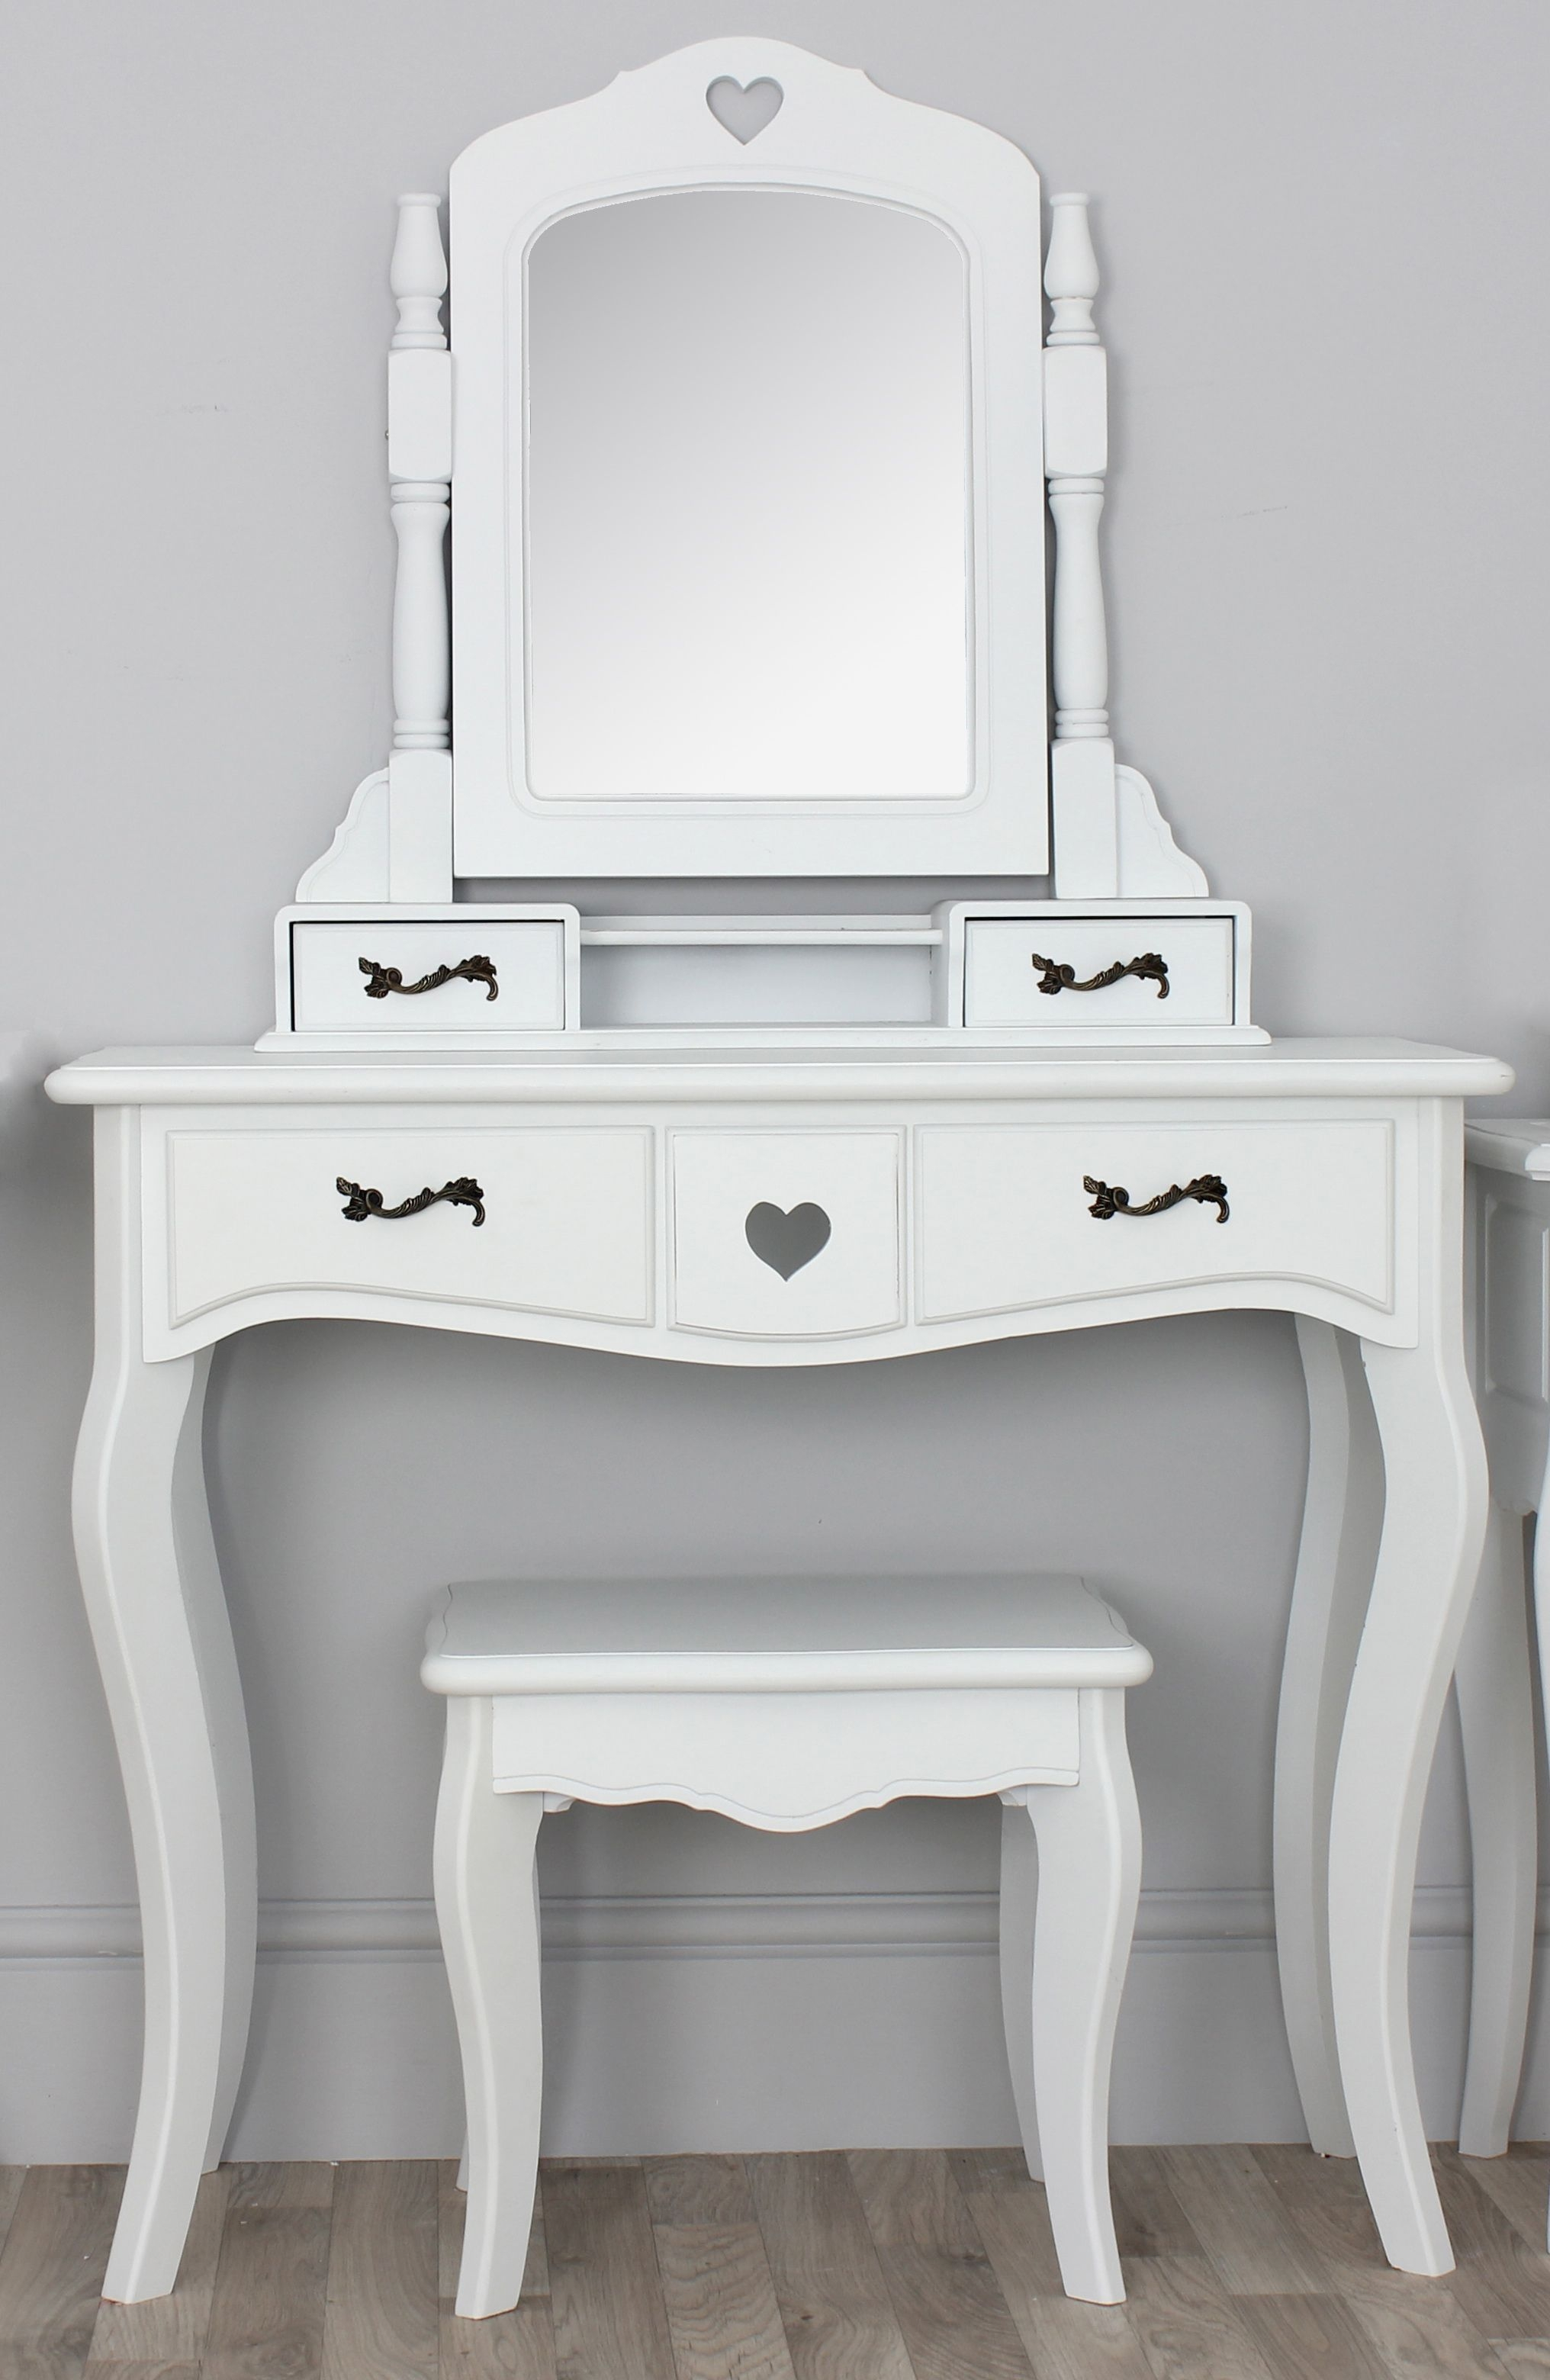 Narrow White Vanity Table With Four Drawers And Spinning Mirror For Small Table Mirror (Image 8 of 15)